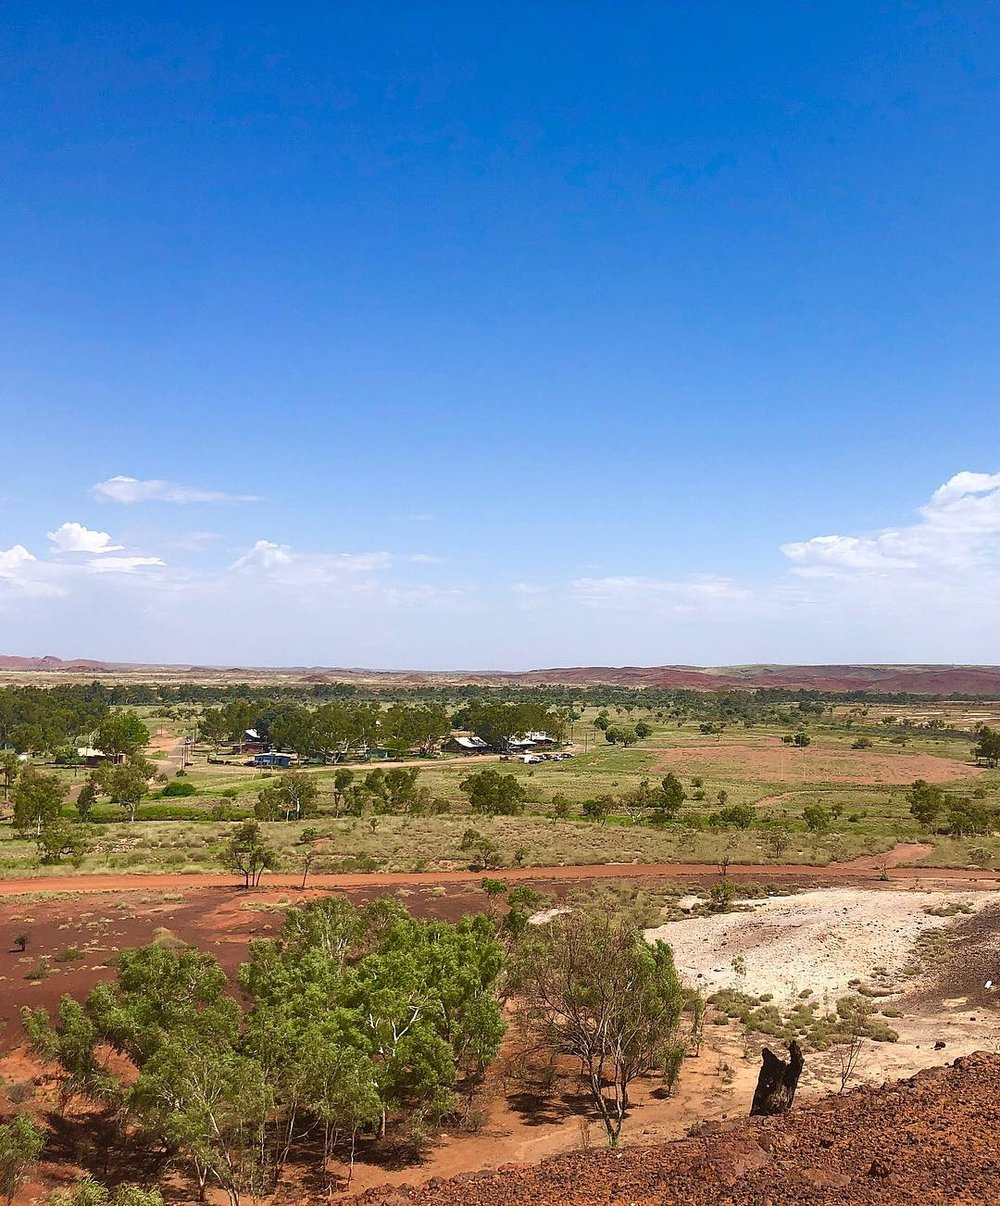 Nullagine, located 296 km south-east of Port Hedland.